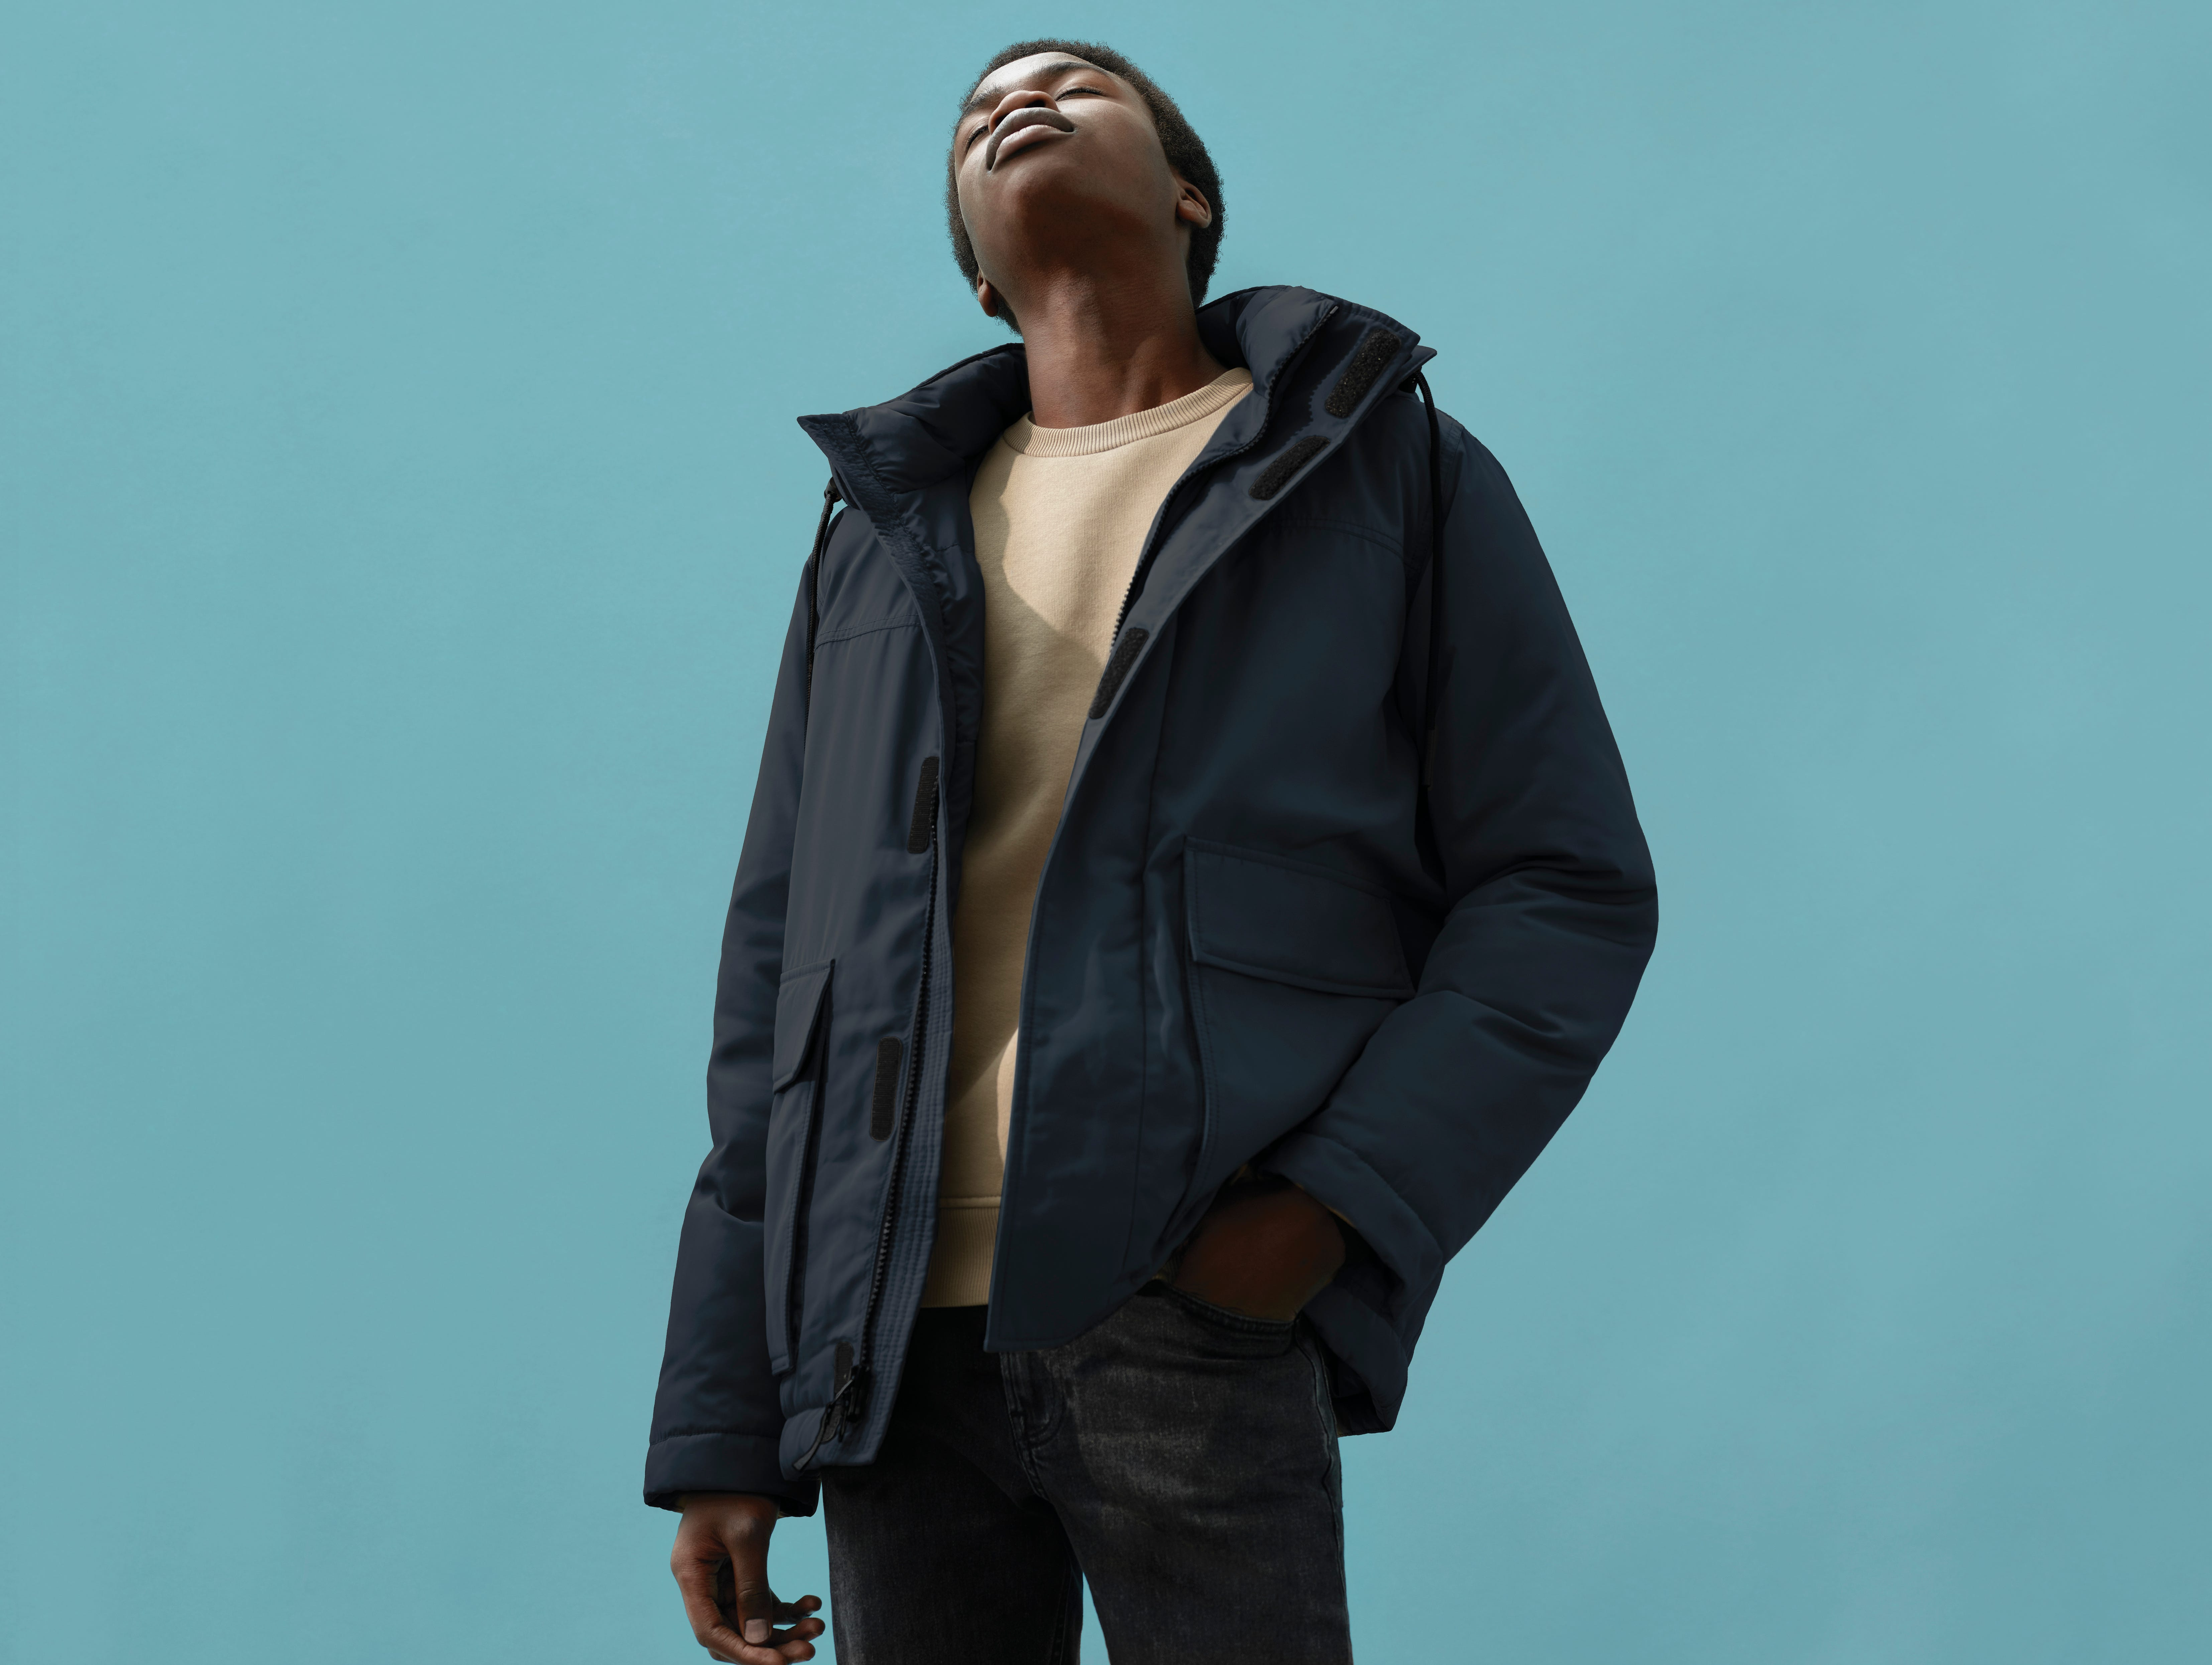 Everlane says it is reusing 3 million plastic bottles in the making of its new ReNew collection of outerwear. Here, the collection's Oversized Park for men, which costs $165. Each of the parkas is made with 65 recycled bottles.